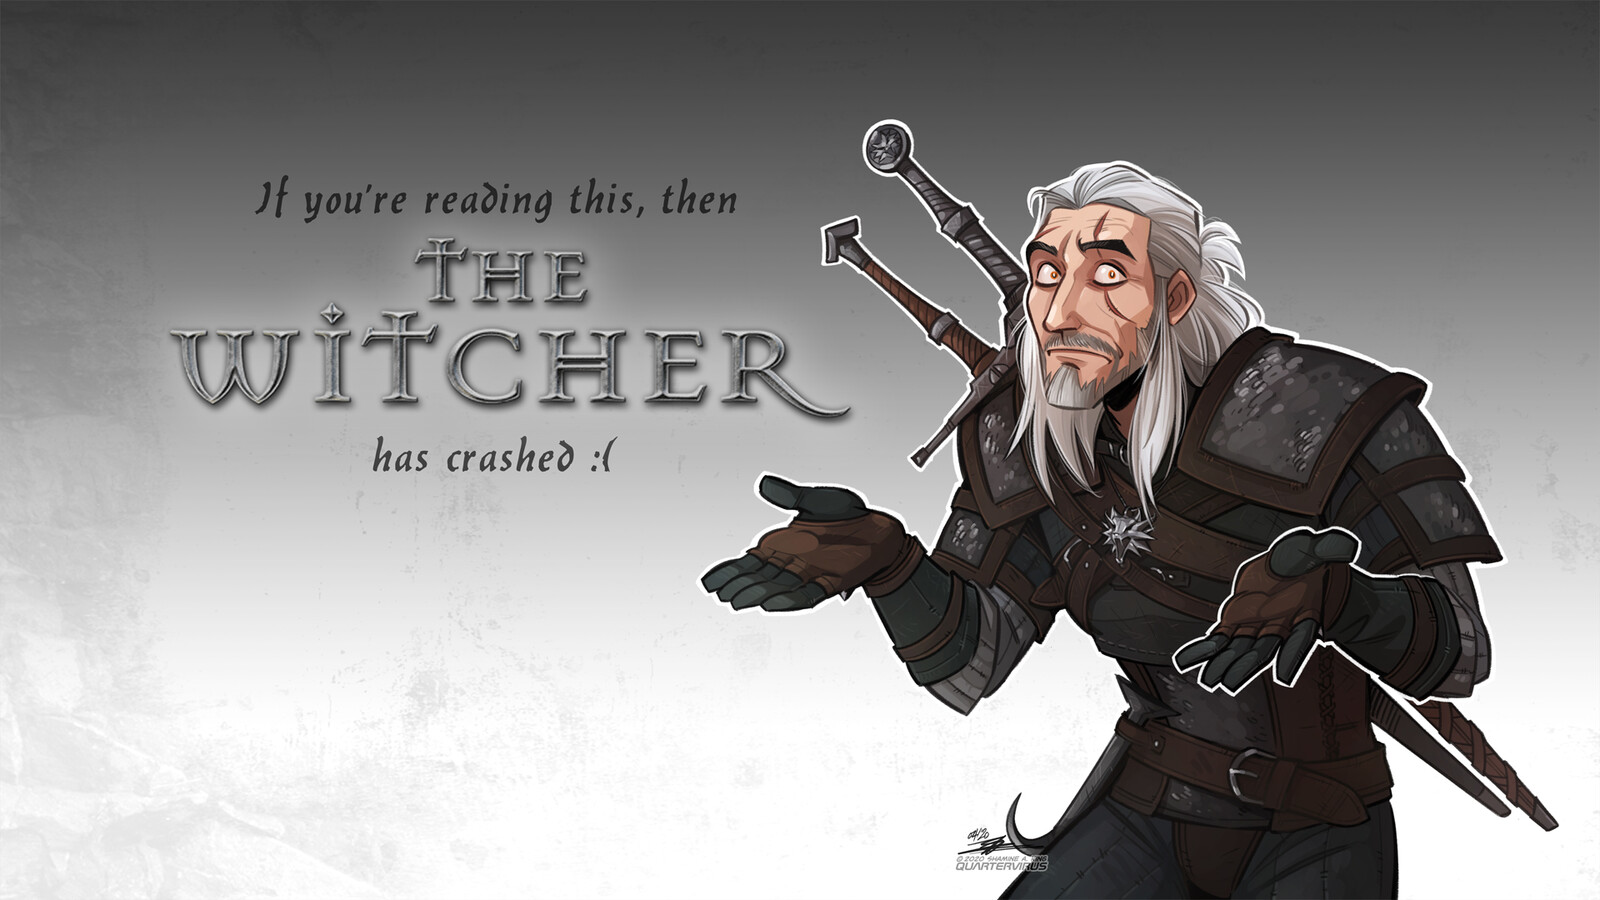 Custom desktop background for my Witcher streams... which, incidentally, happen every weekend at around 2pm Singapore Time! Follow me on Twitch to find out when I go live! https://www.twitch.tv/quartervirus